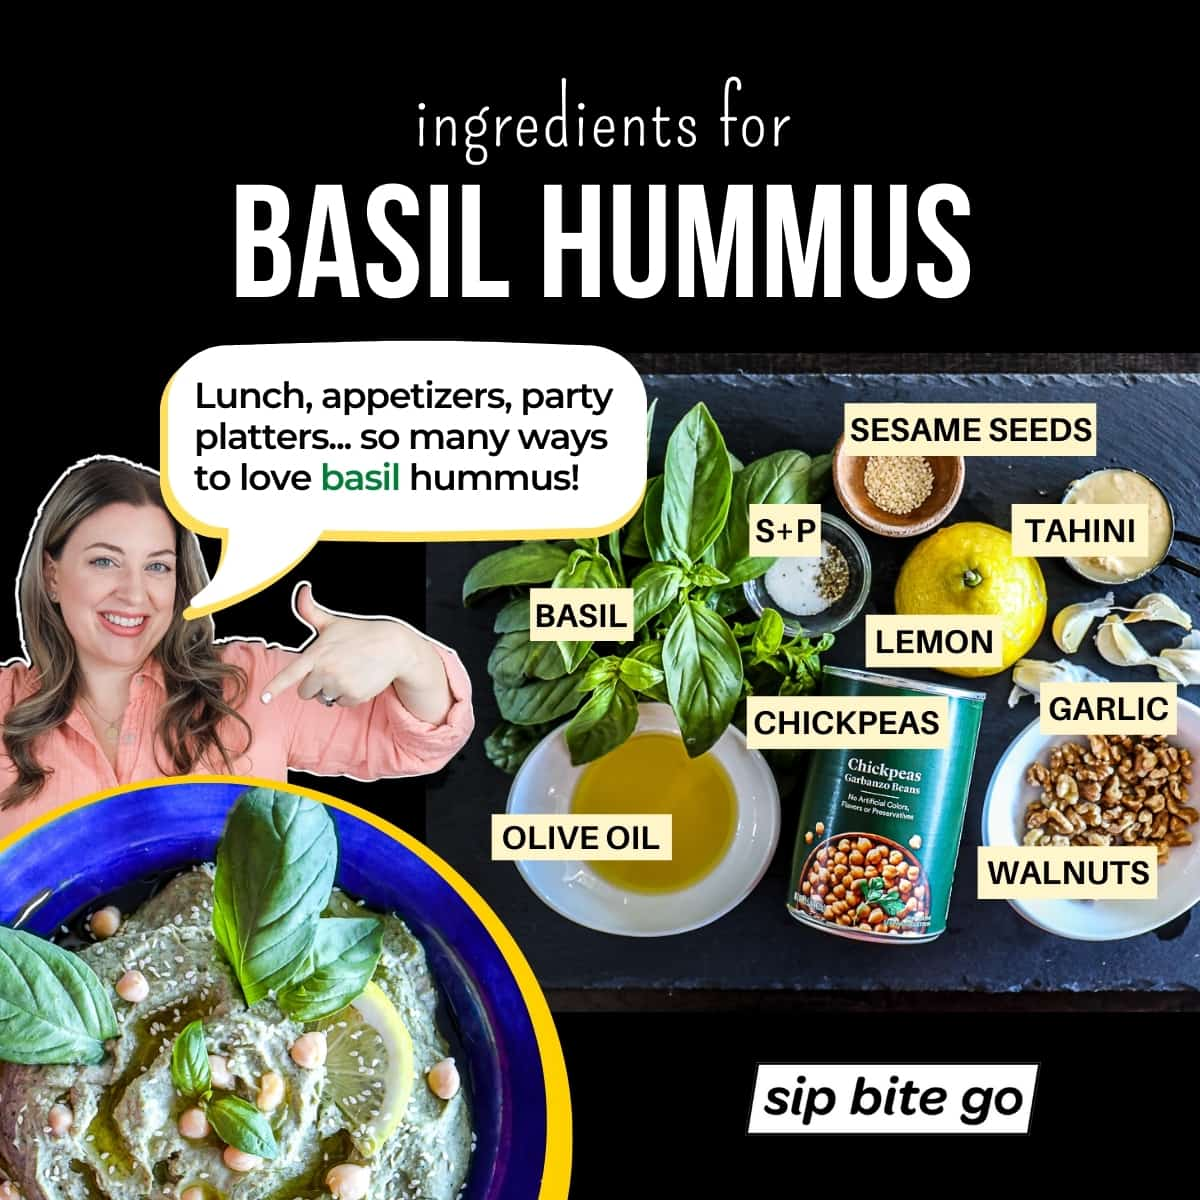 Infographic chart with photos and captions for basil hummus ingredients